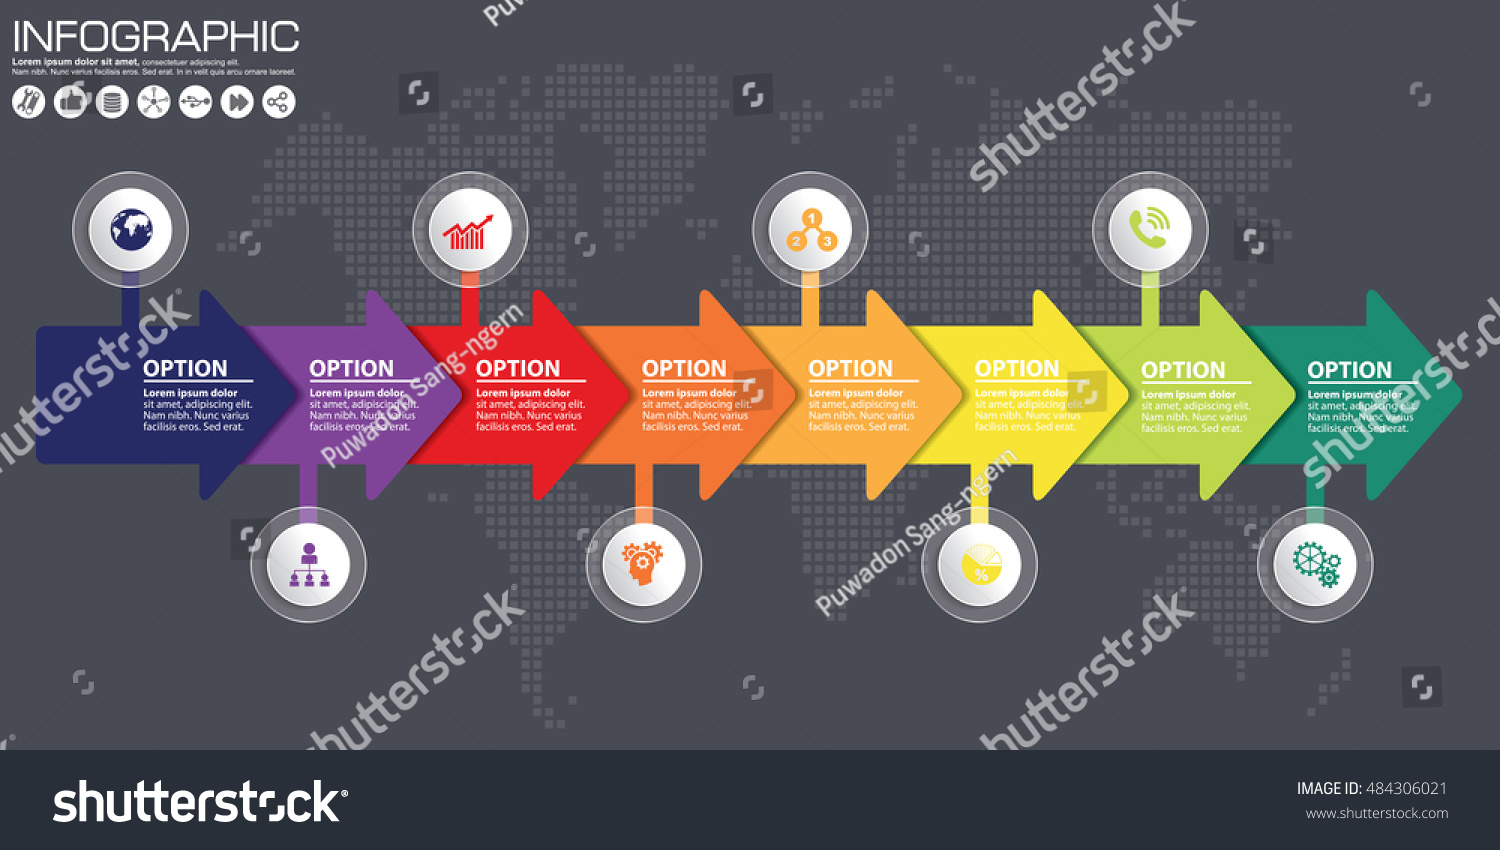 Timeline arrow vector infographic world map stock vector 484306021 timeline and arrow vector infographic world map background gumiabroncs Image collections